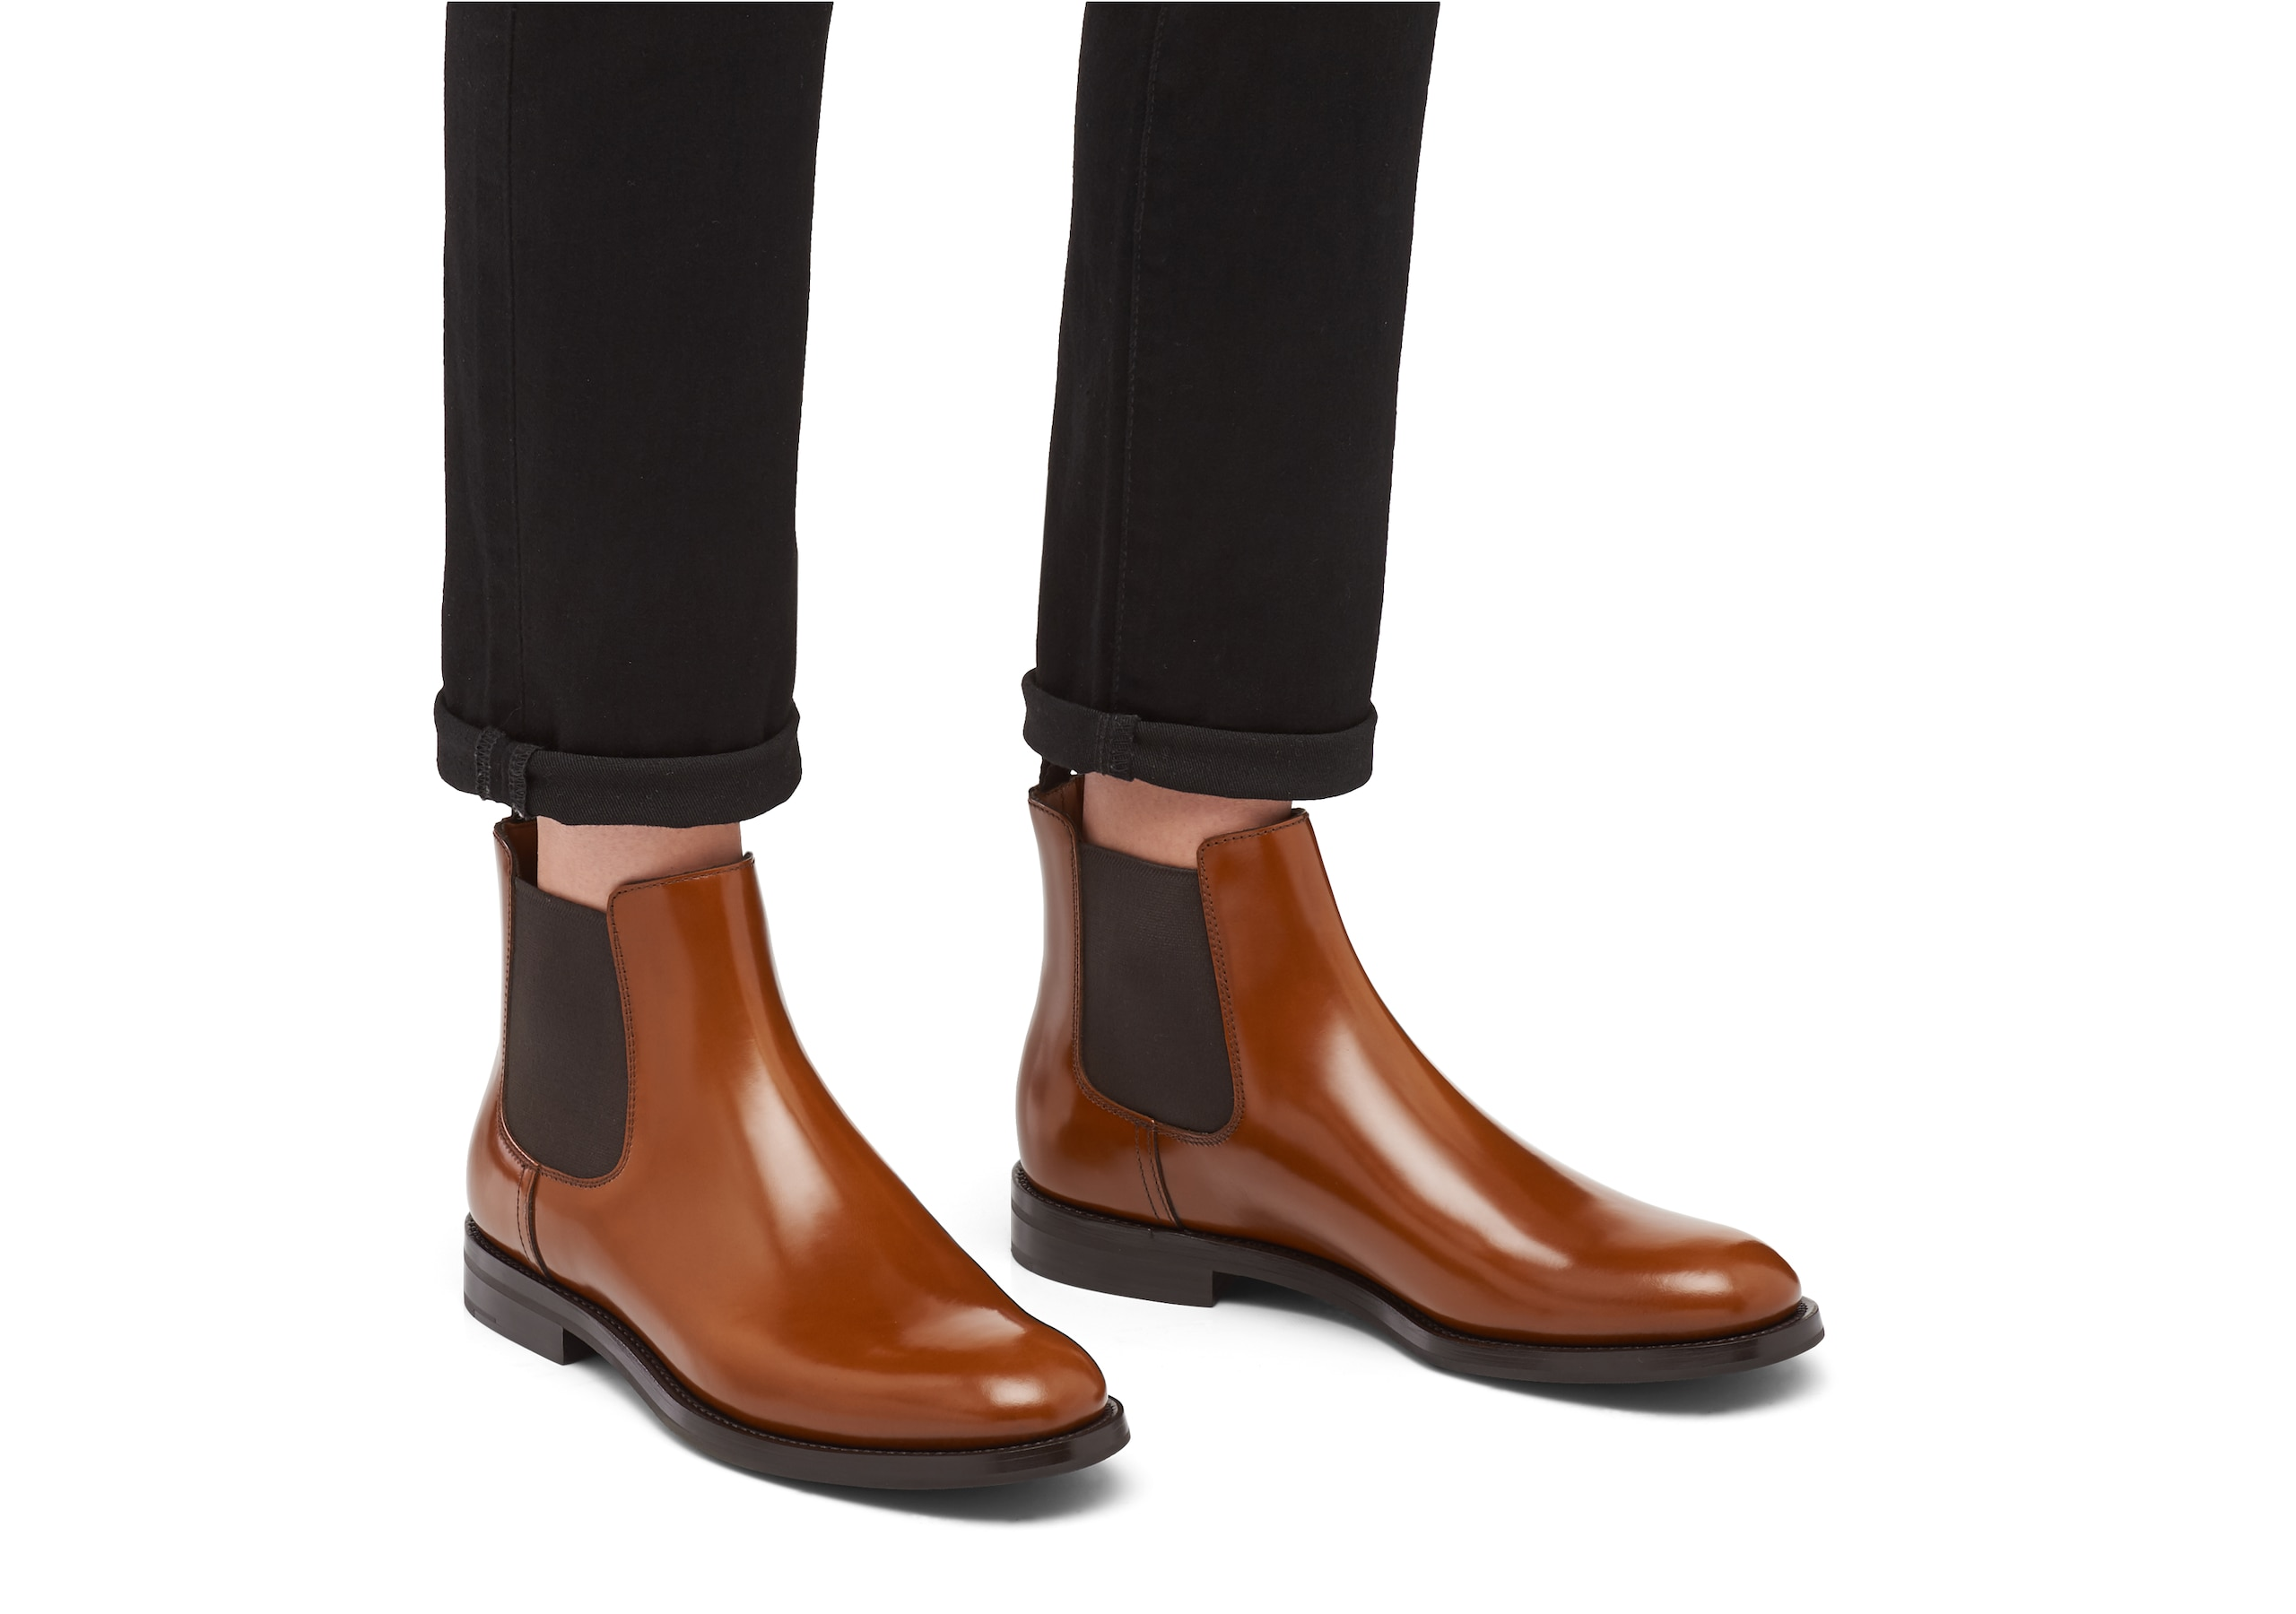 Monmouth wg Church's Polished Binder Chelsea Boot Brown